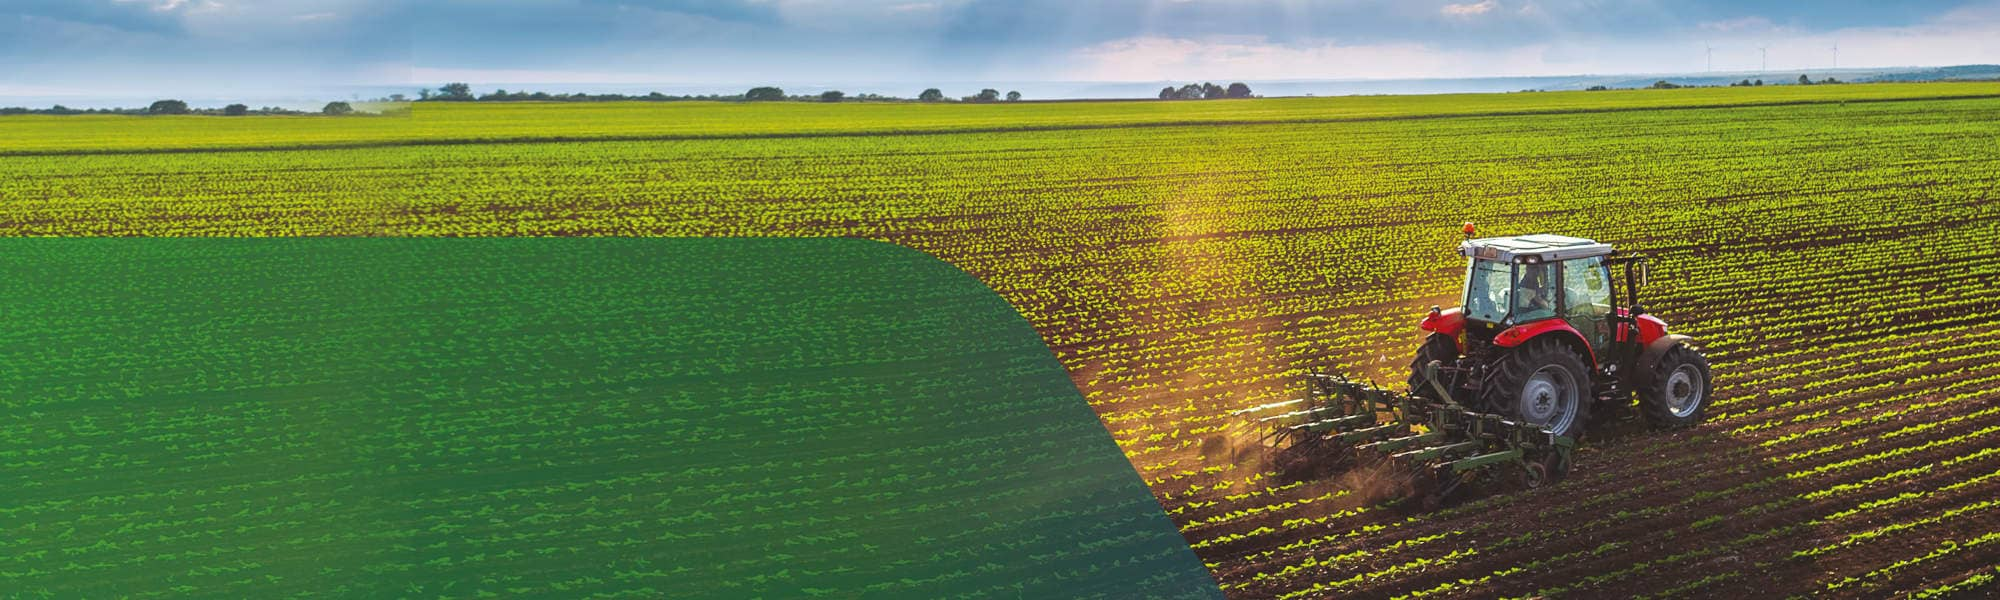 Temo parts is a leading supplier of agricultural & industrial parts & accessories